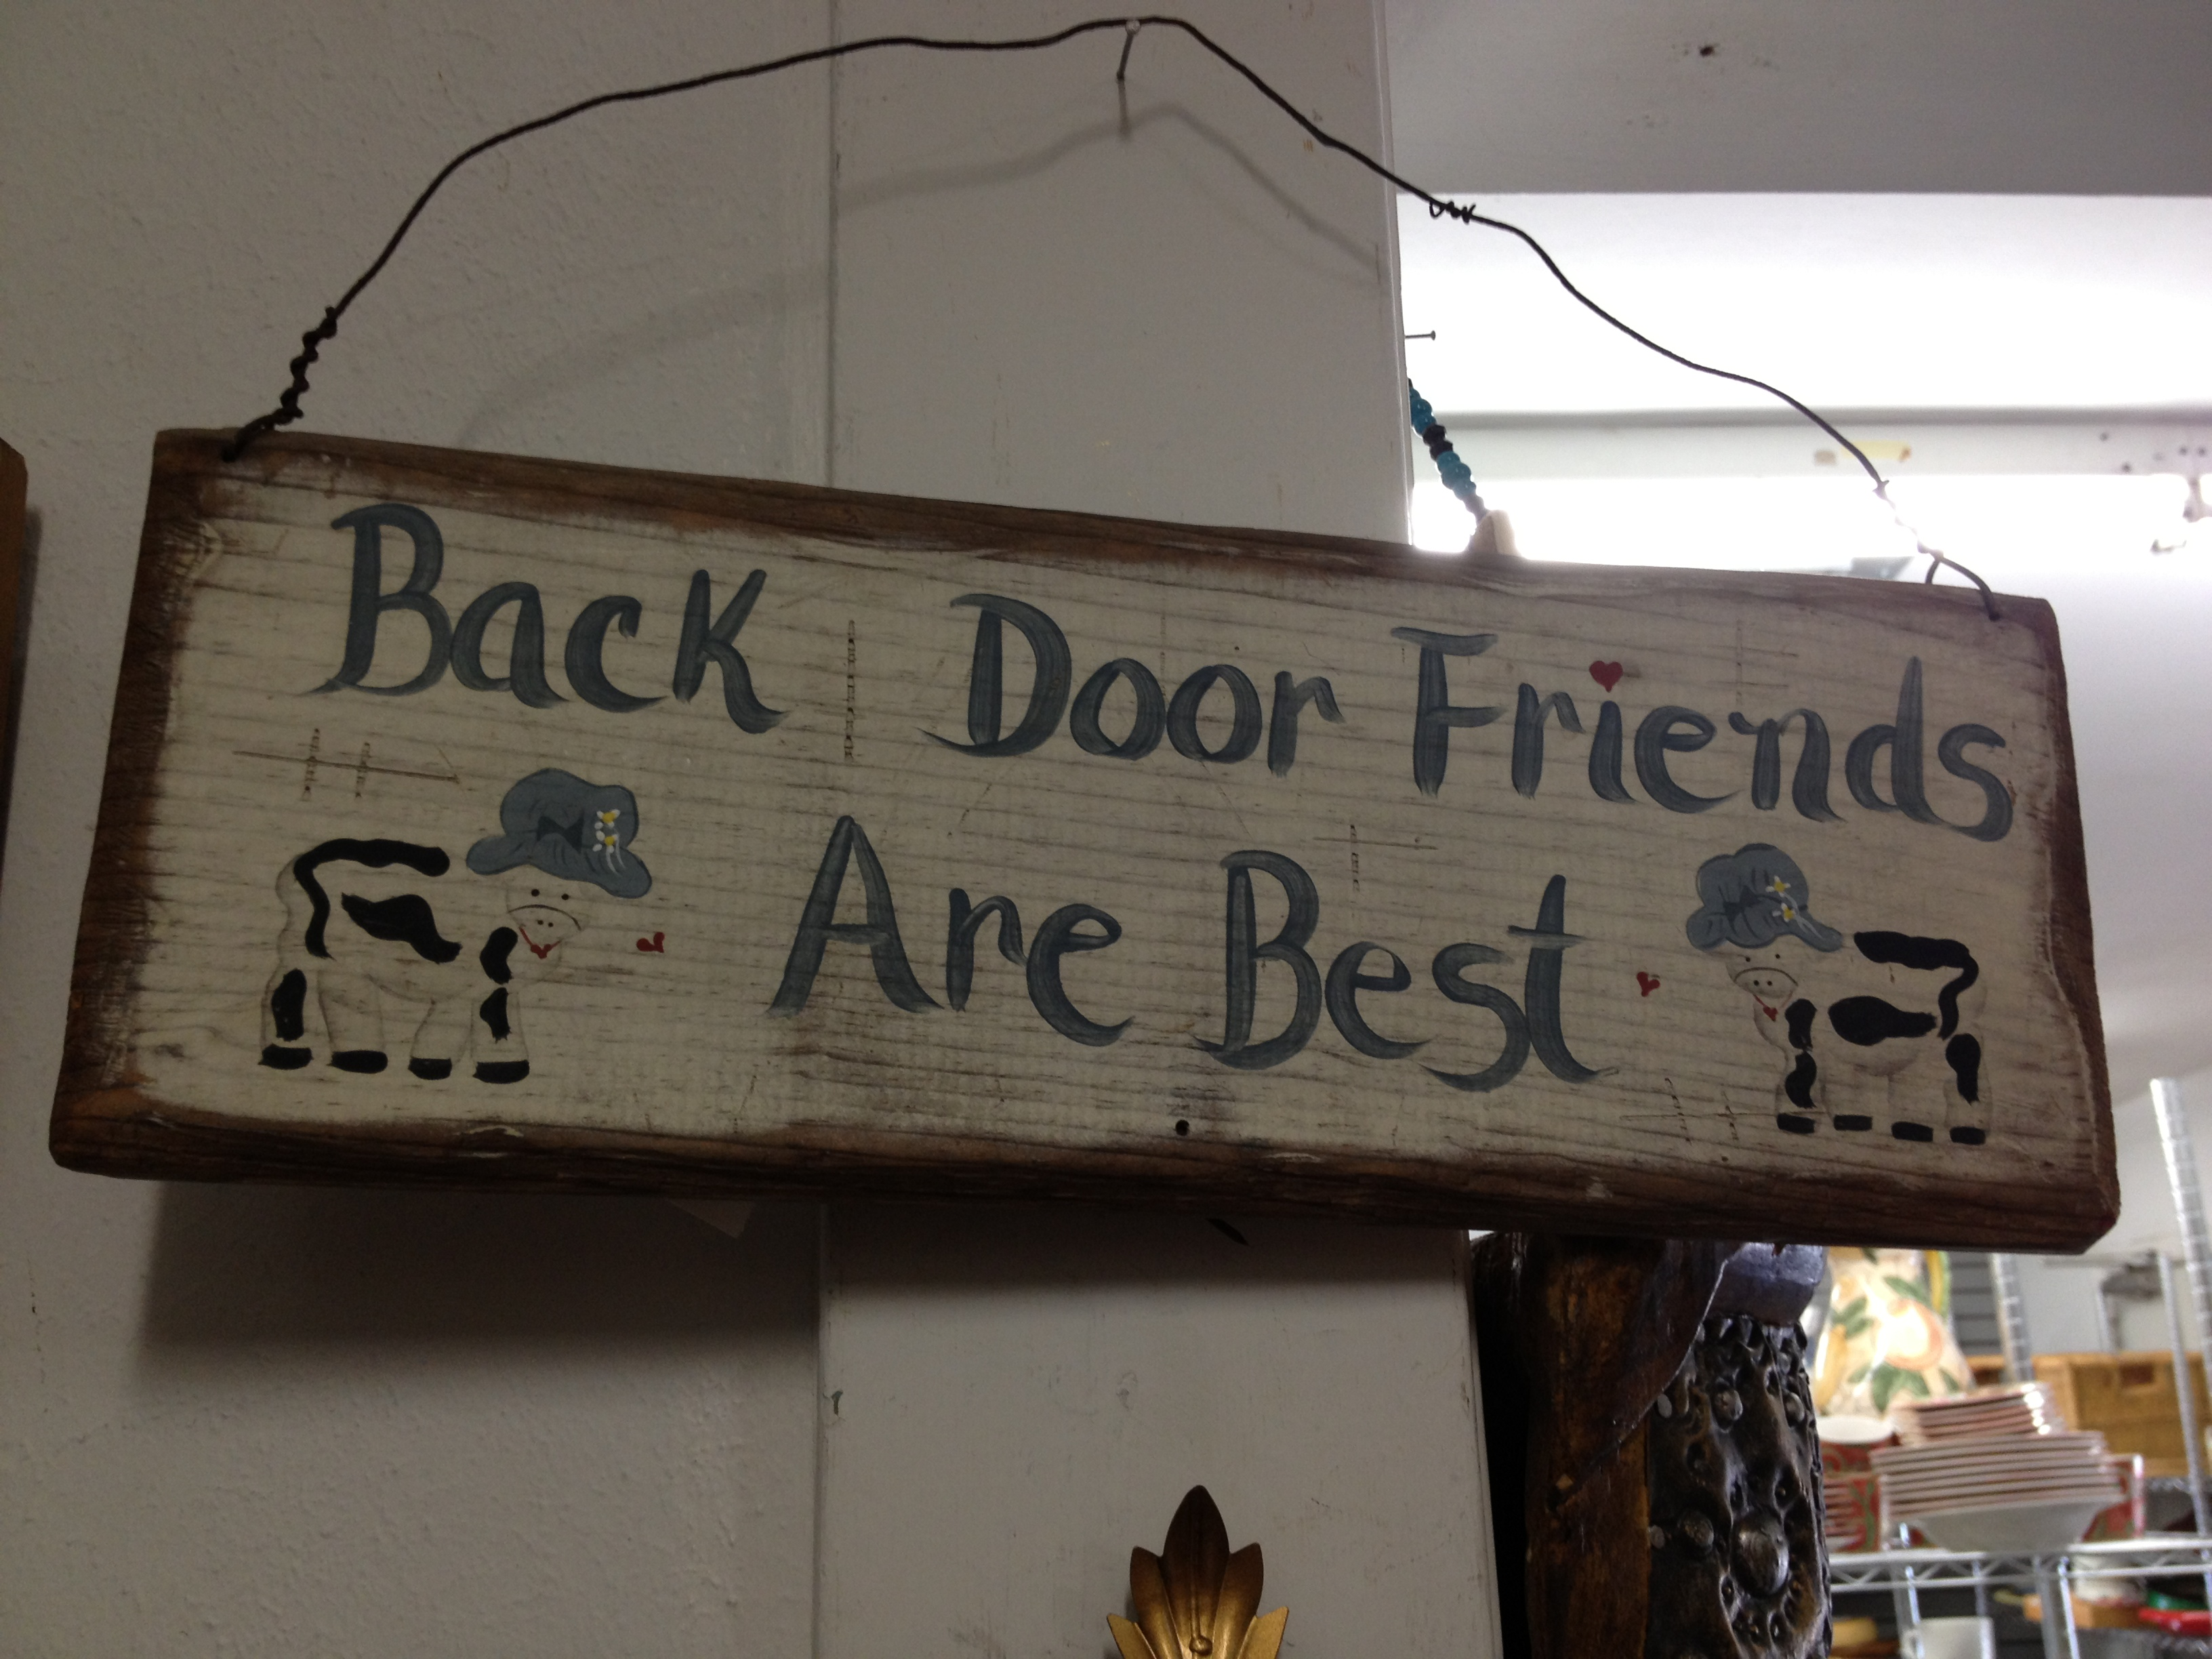 back door friends are best?!